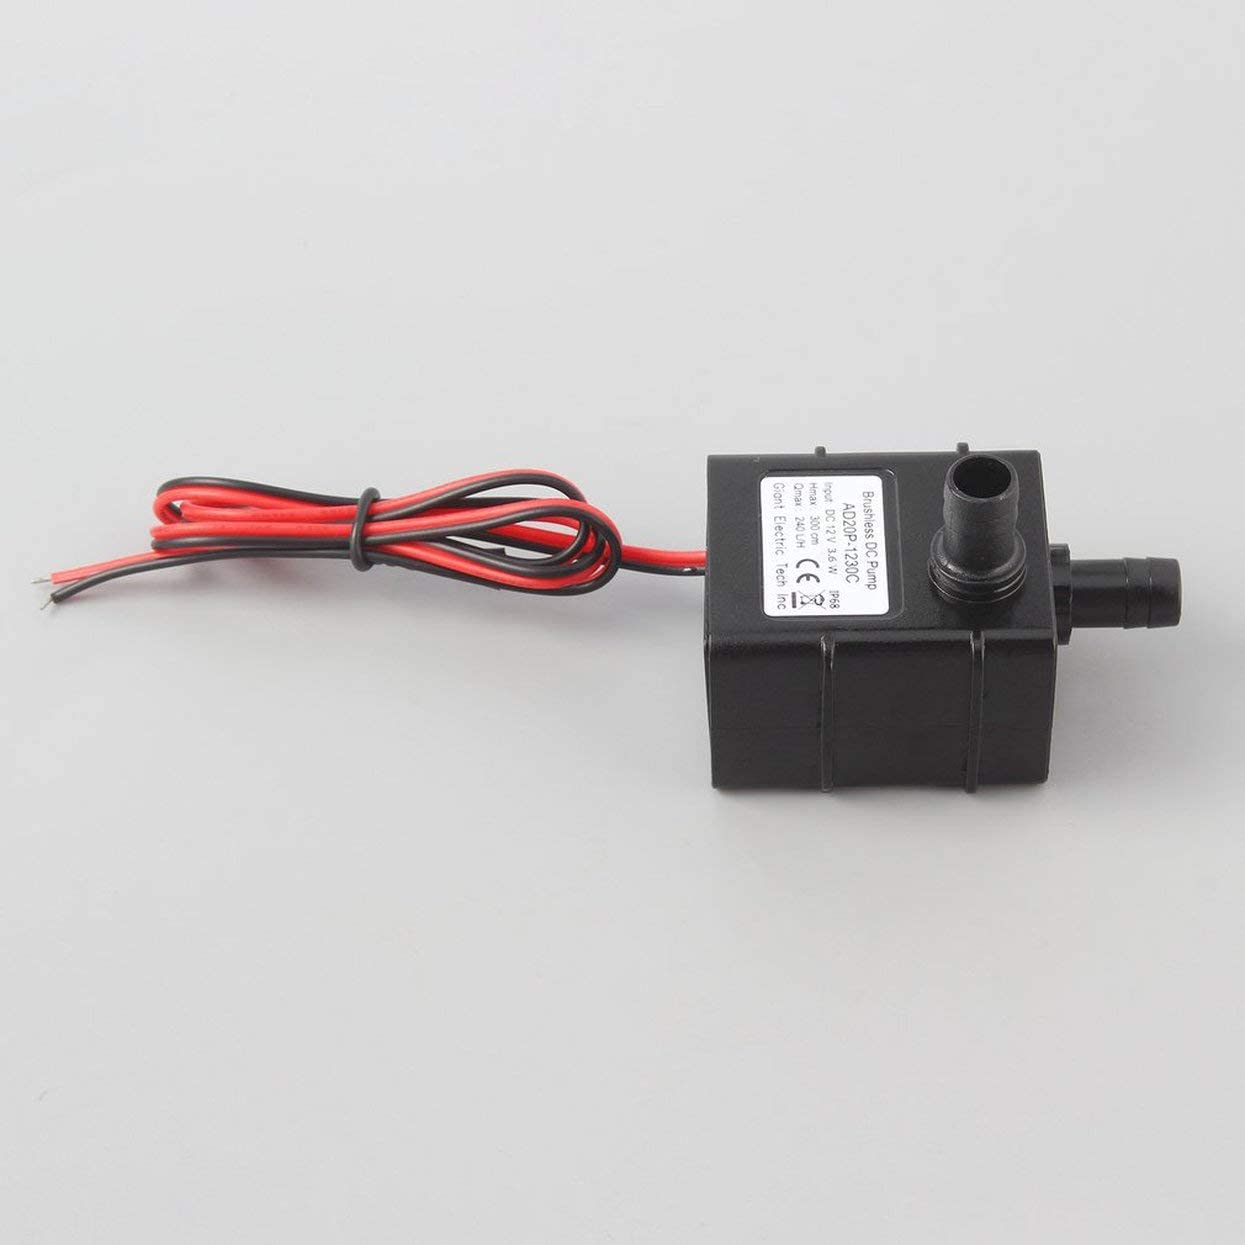 DC 12V Tauch Wasserpumpe 5M Hydraulikkopf Brushless Low Noise 40 ℃ 100 ℃ JT-1000B-12